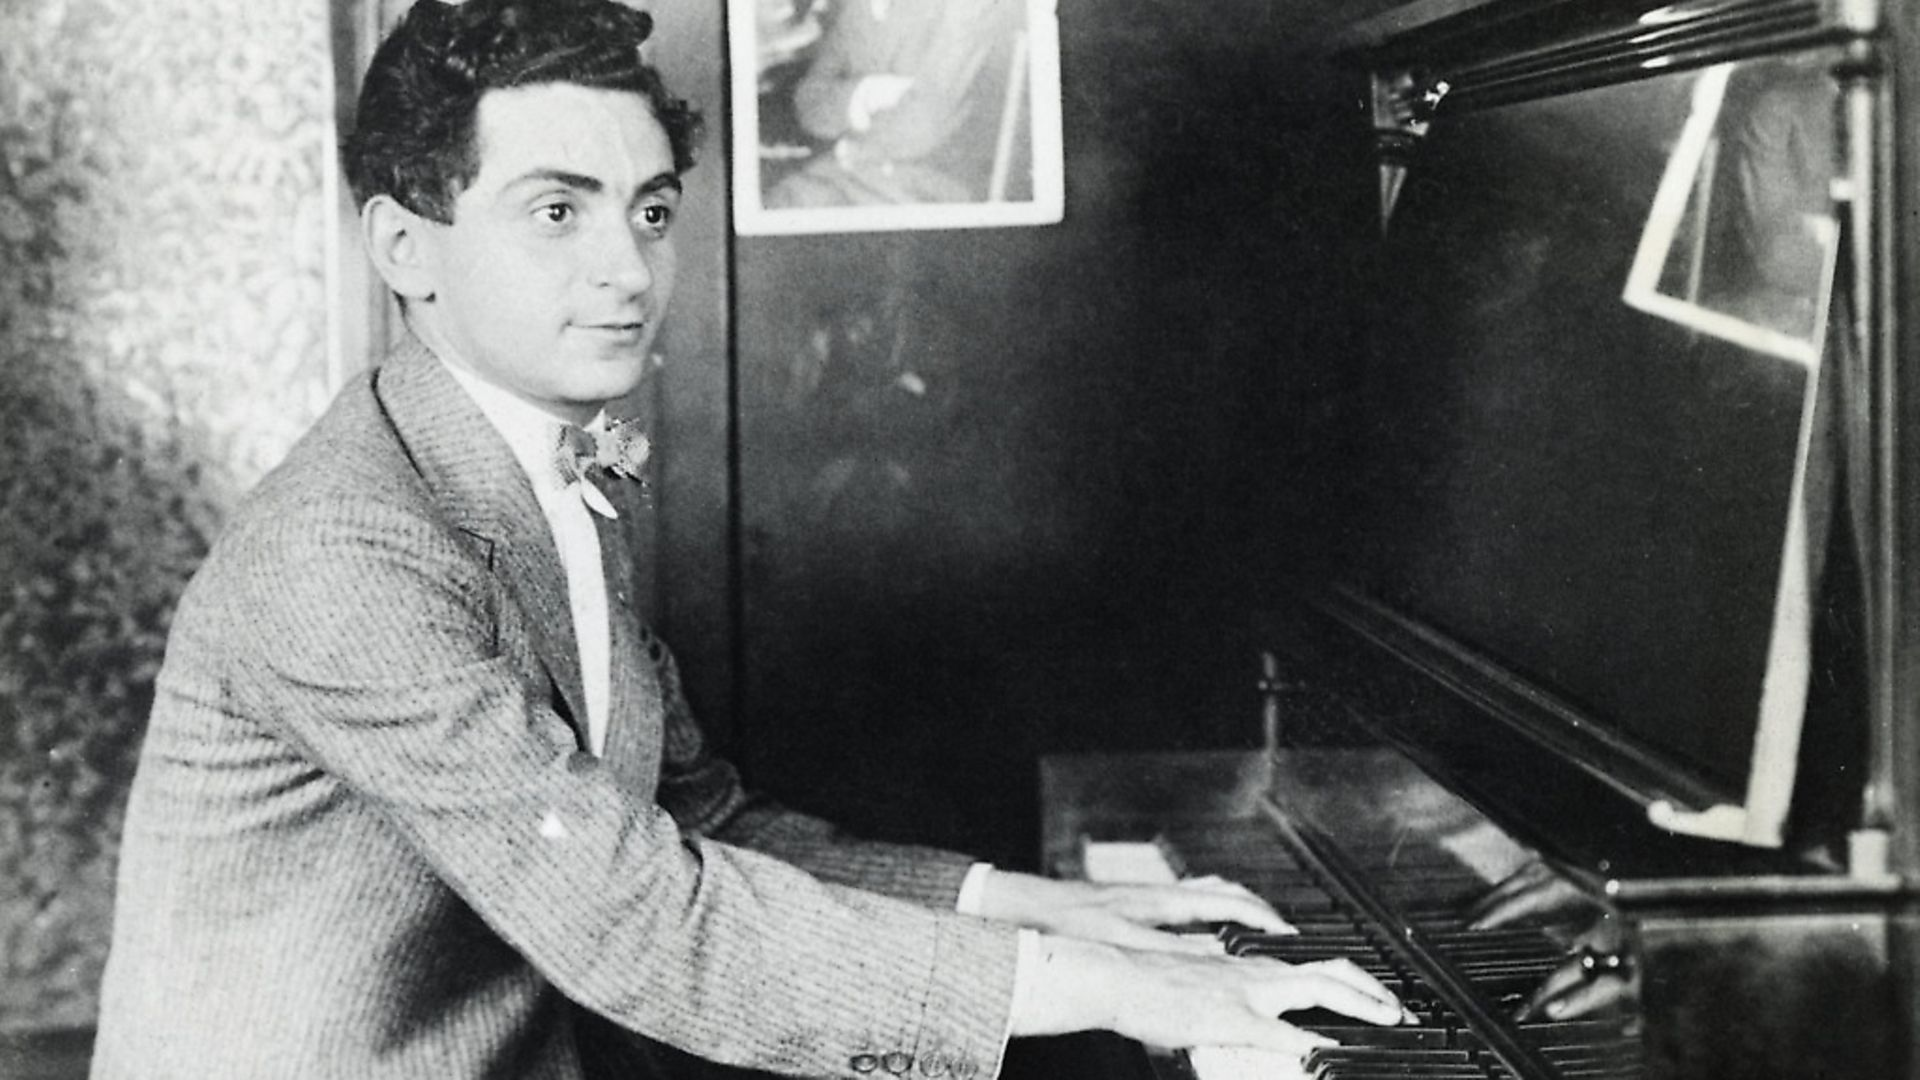 Composer Irving Berlin is shown seated at a piano, playing. Picture: George Rinhart/Corbis via Getty Images - Credit: Corbis via Getty Images